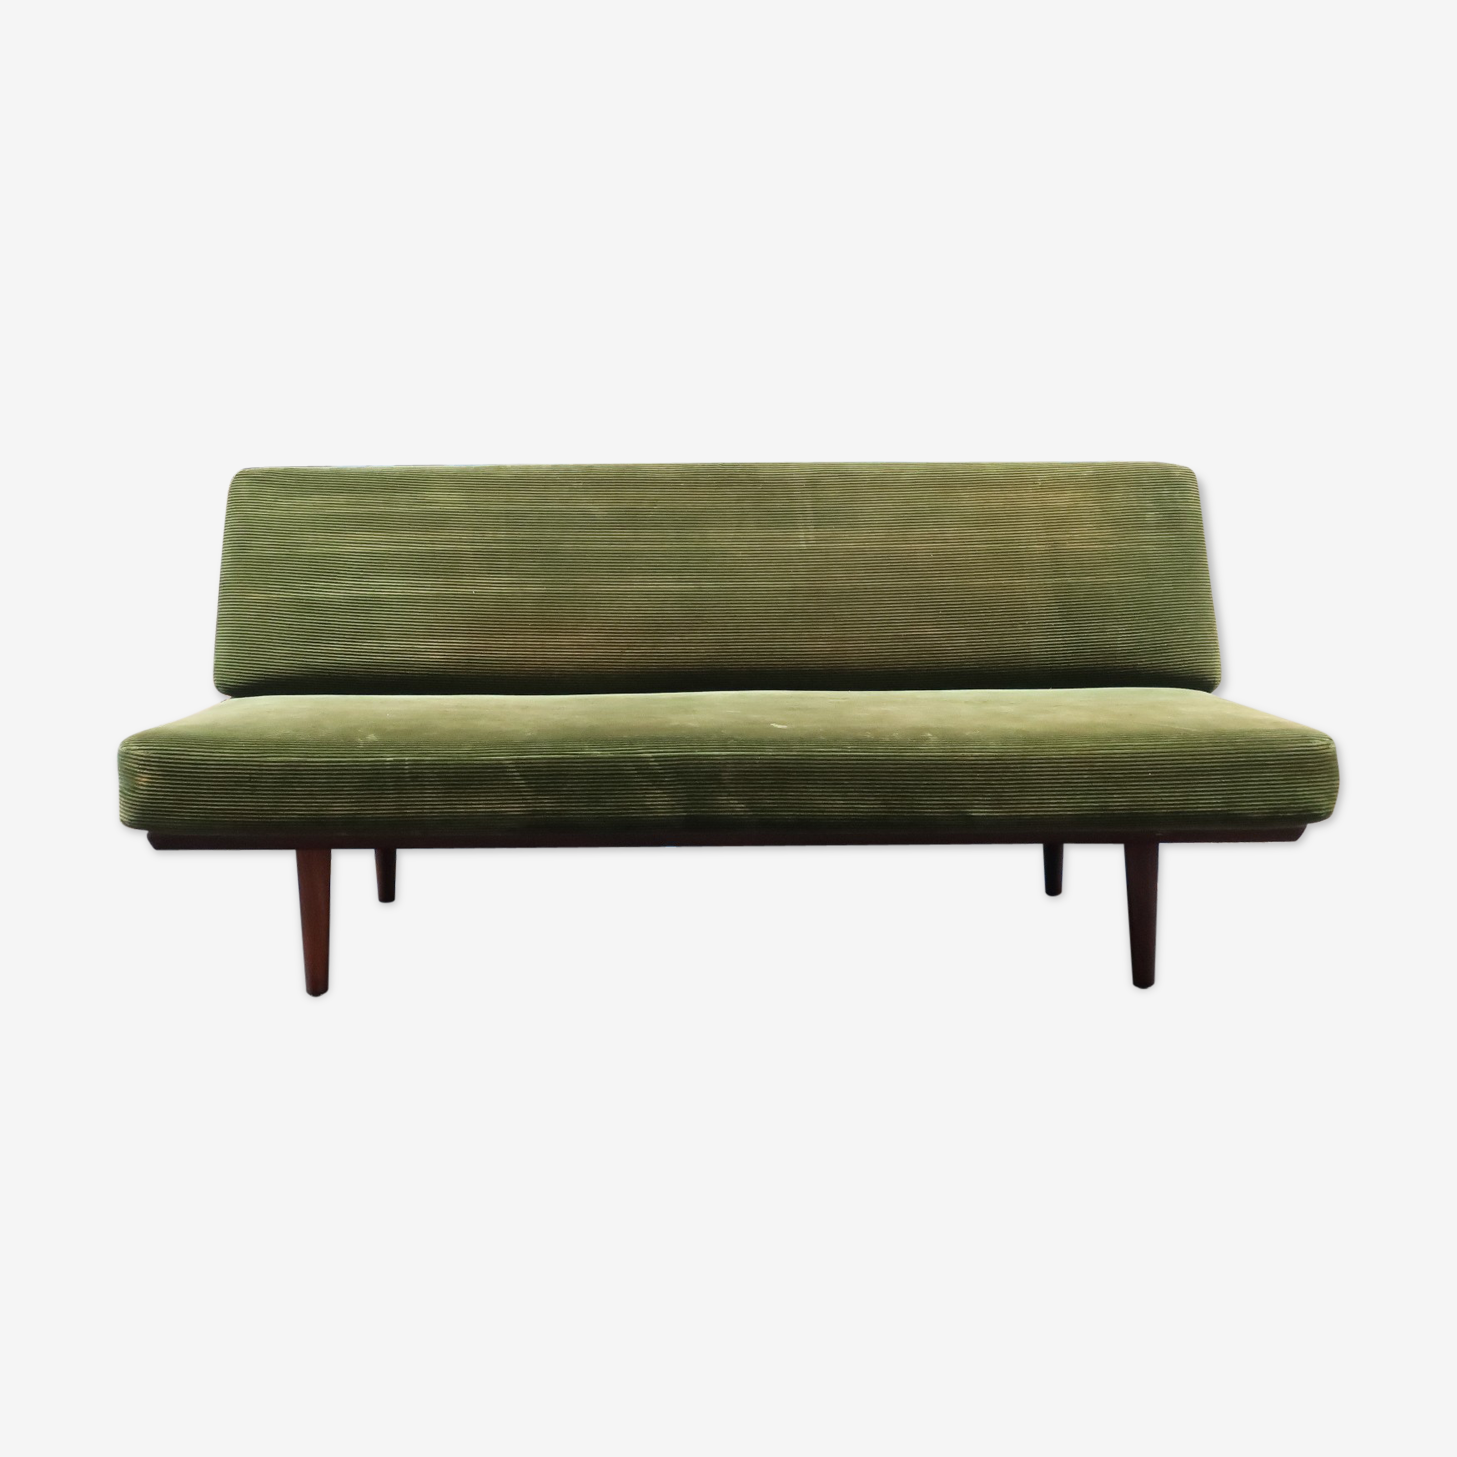 Sofa of the 50 60s